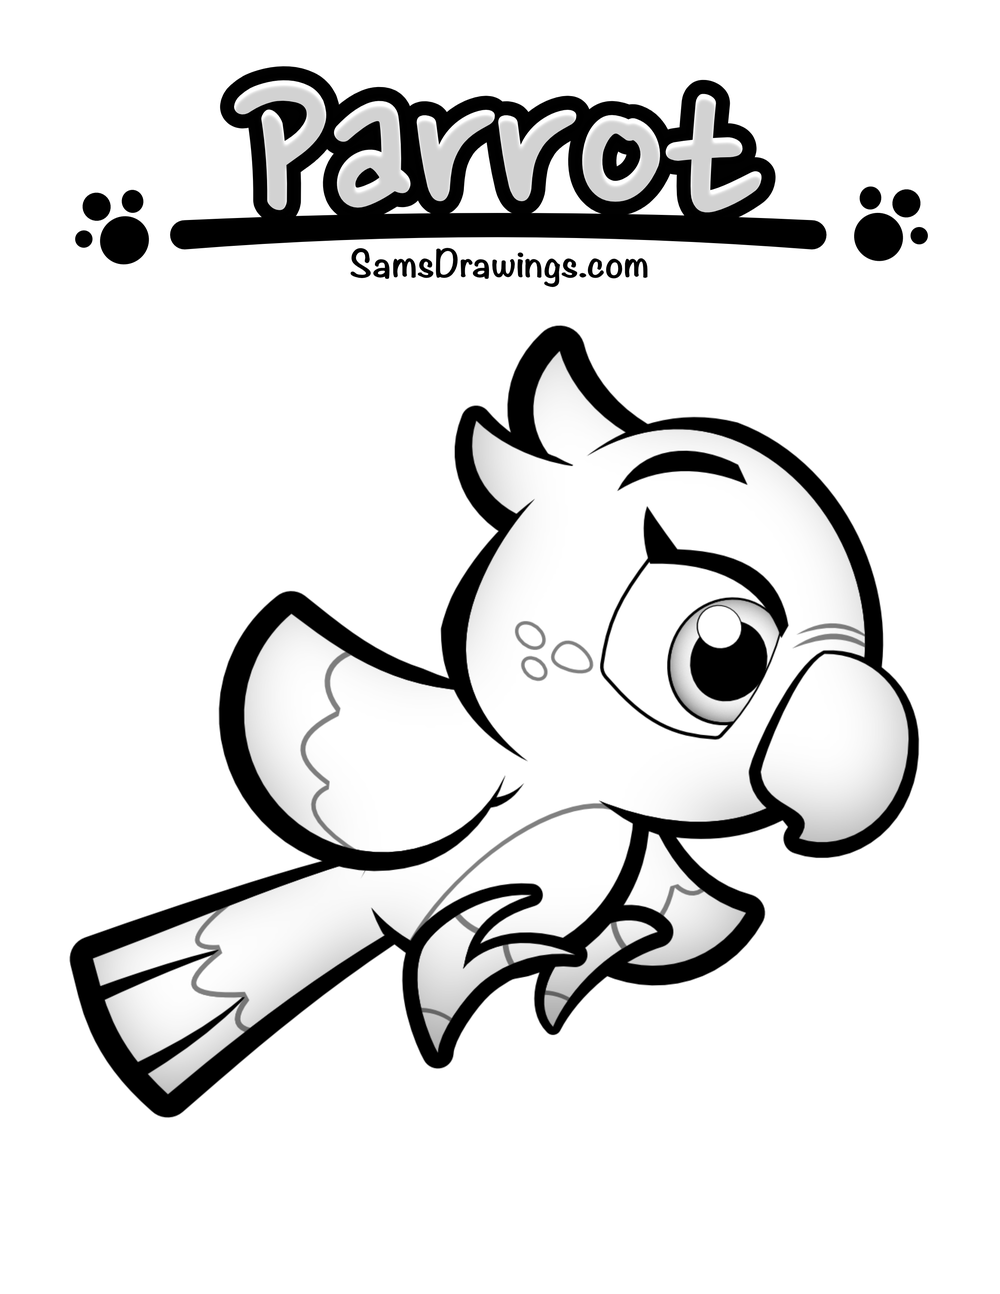 card game coloring pages - photo#27